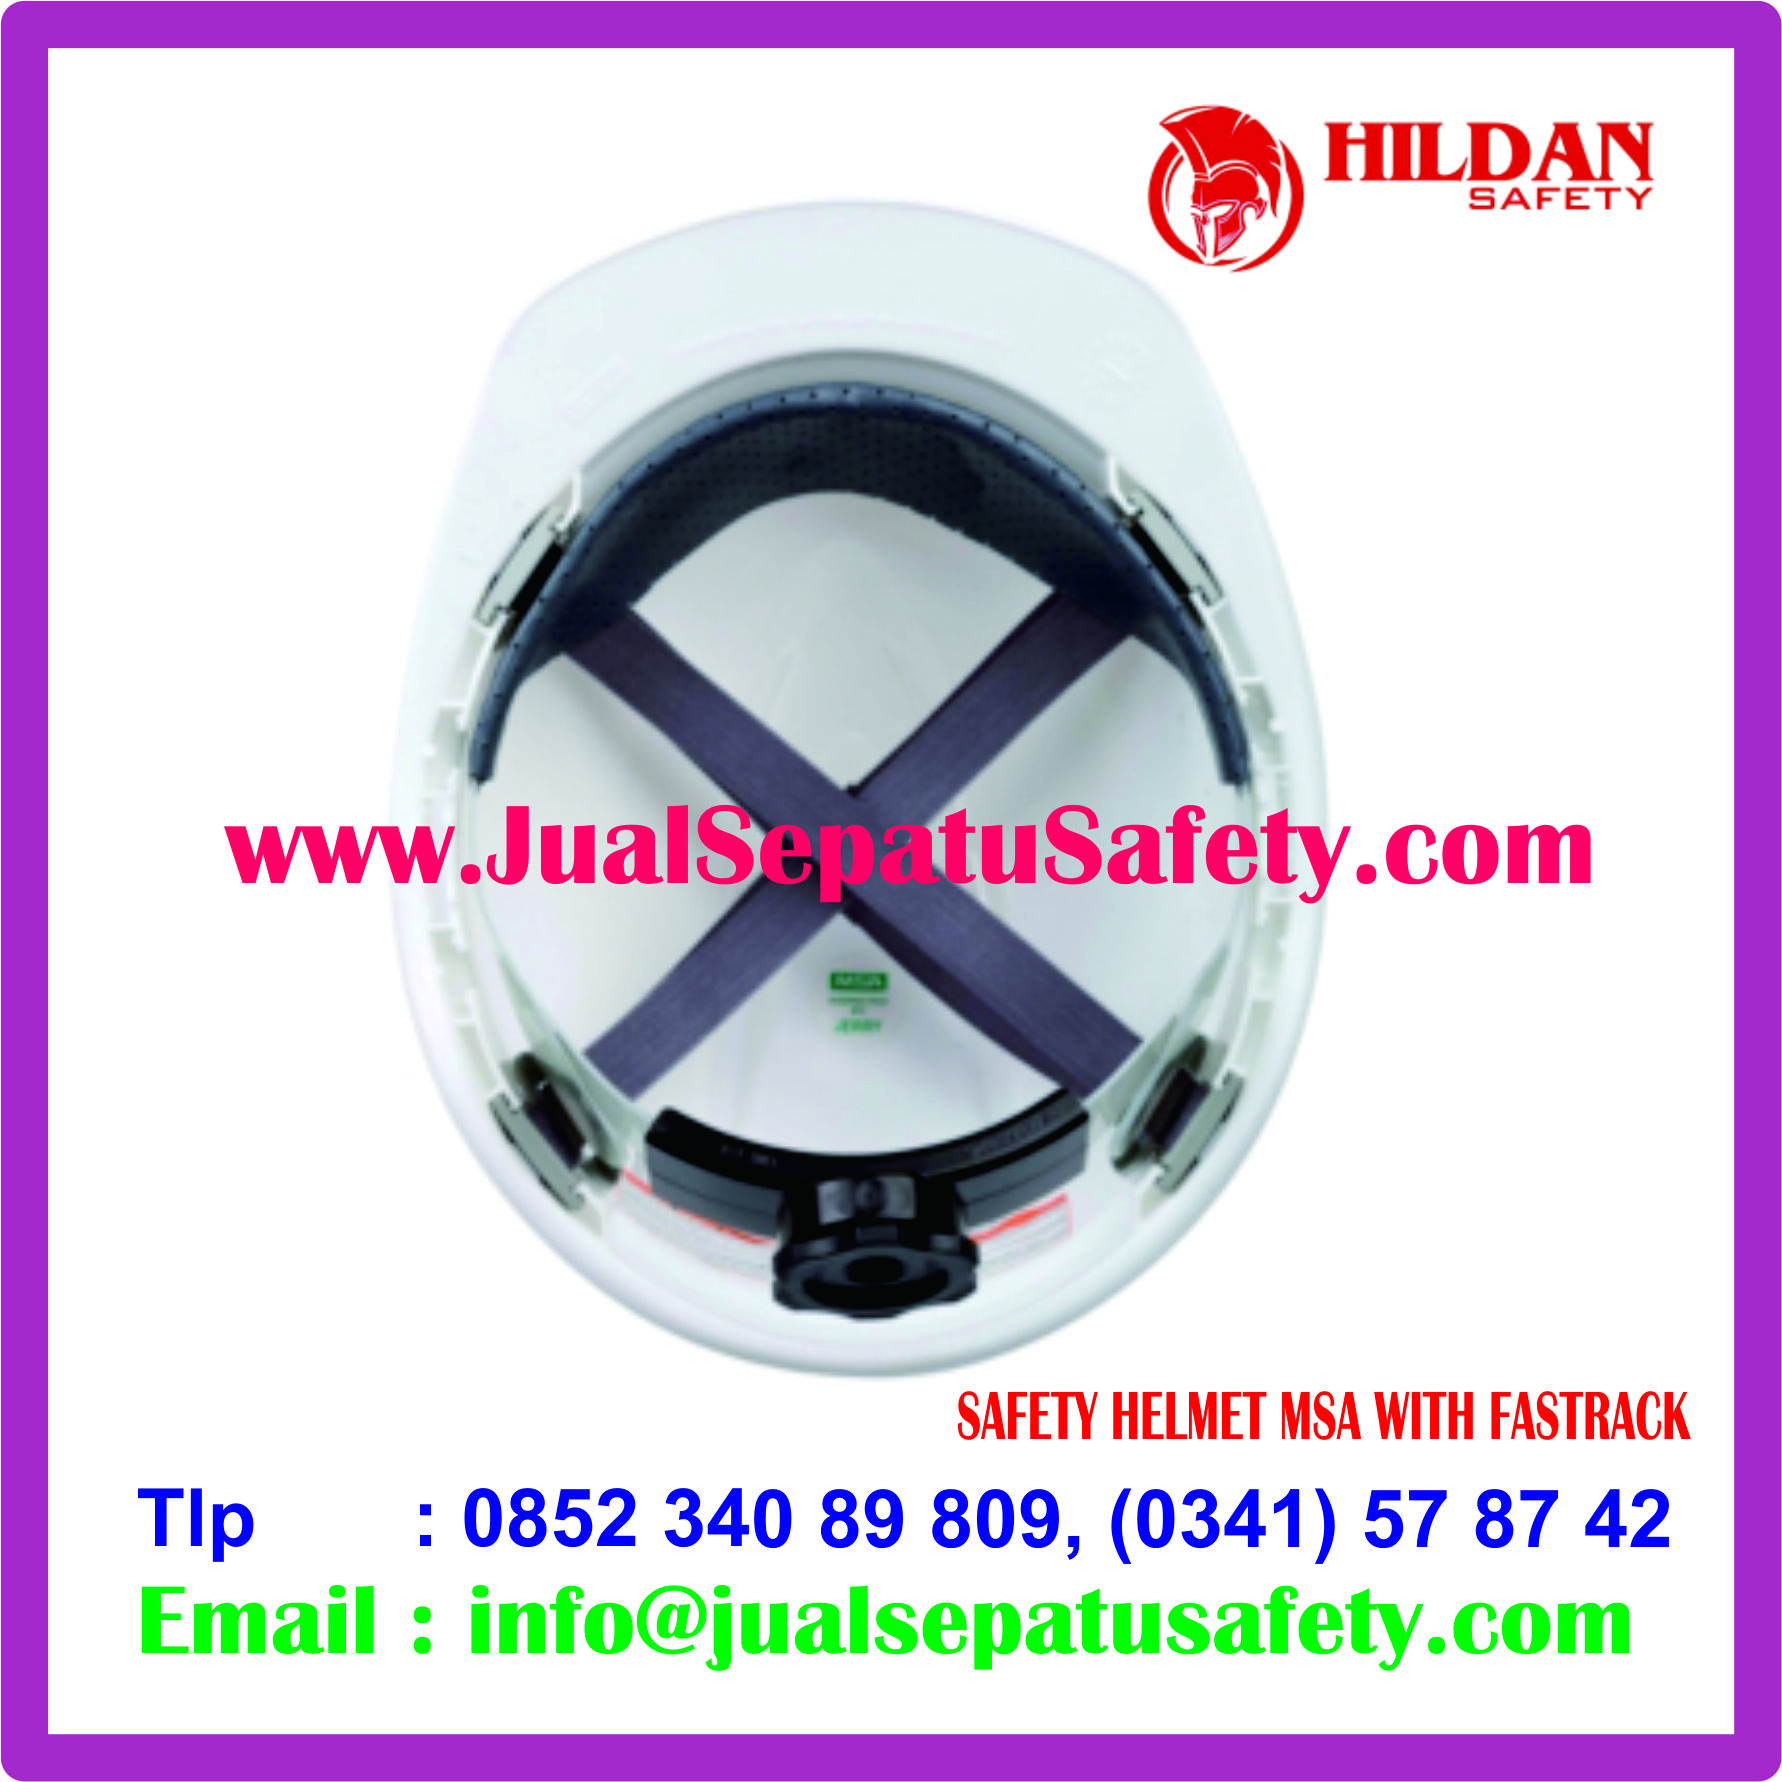 SAFETY HELMET MSA WITH FASTRACK